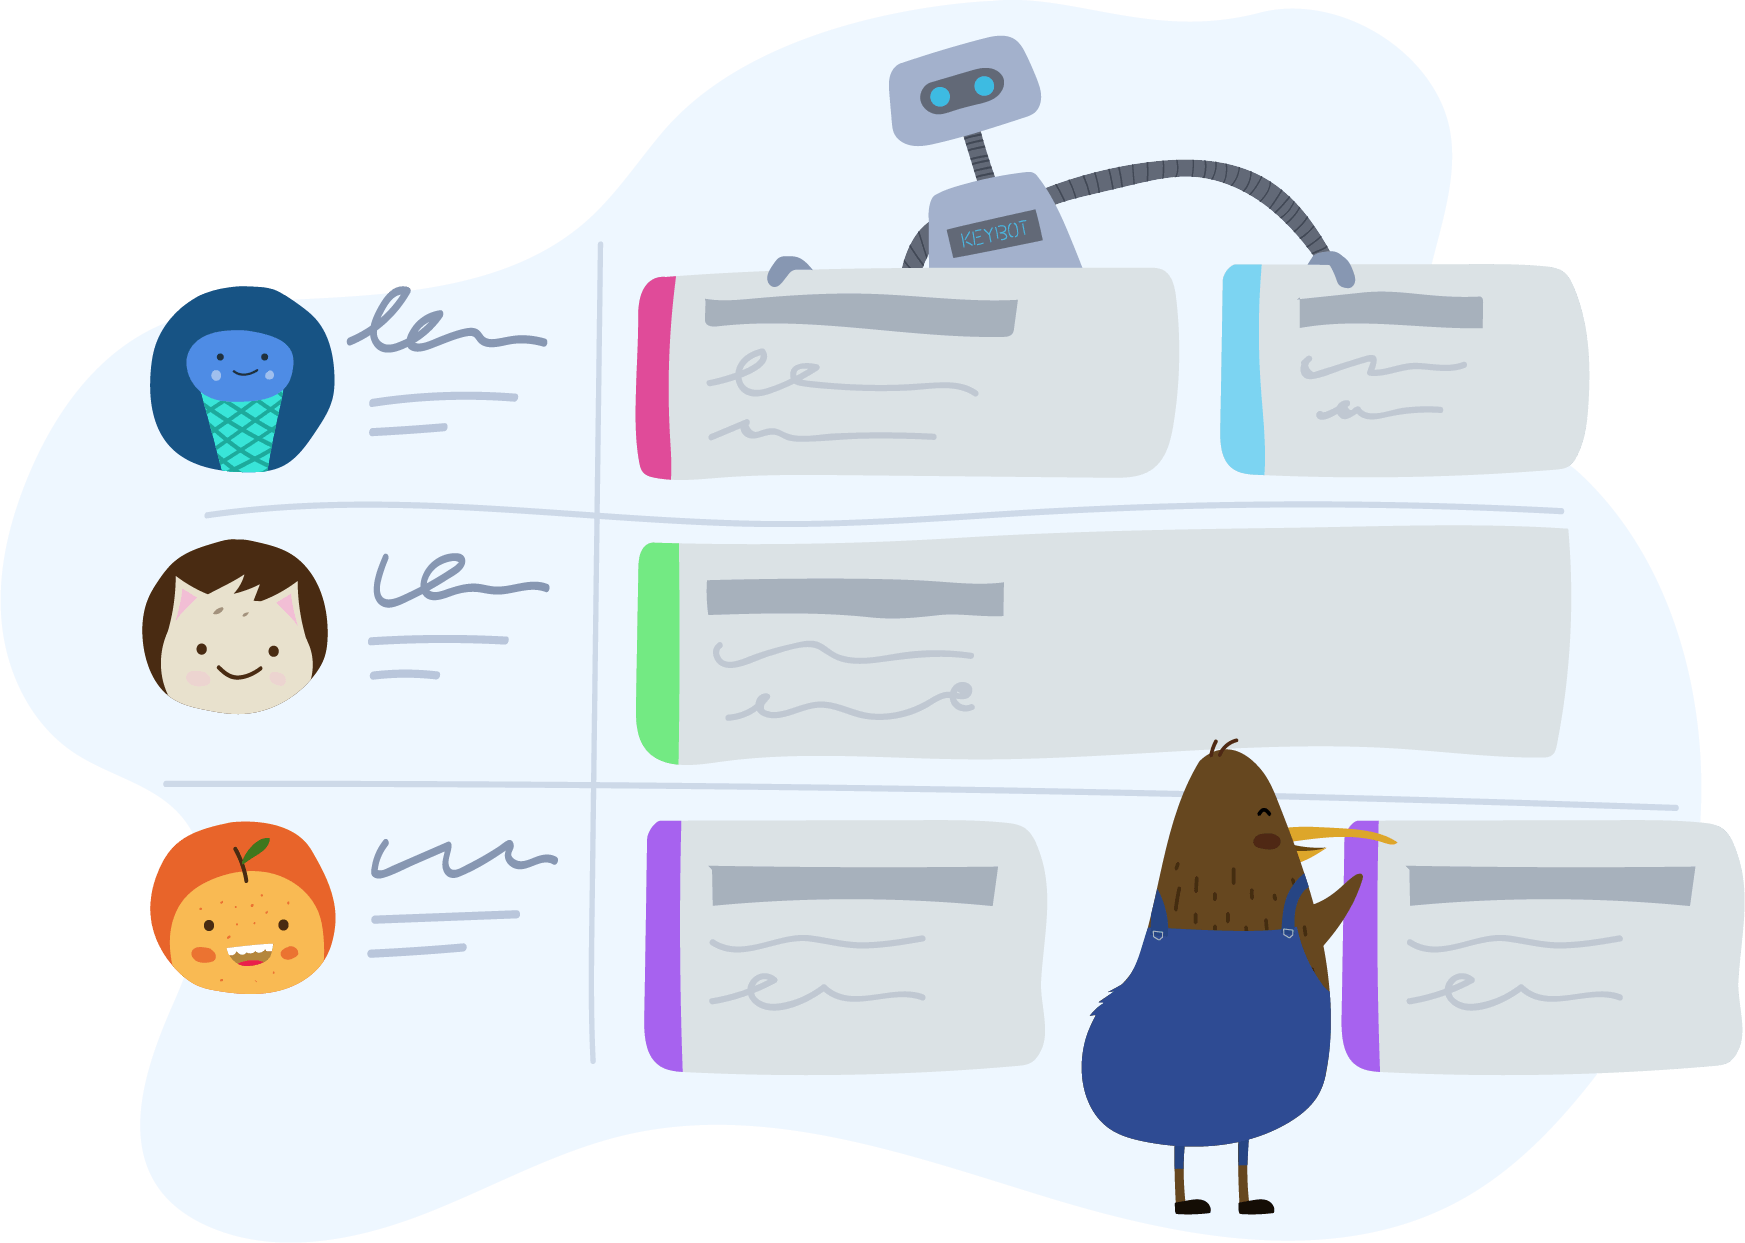 KeyPay rostering illustration with Kiwi, KeyBot and employees